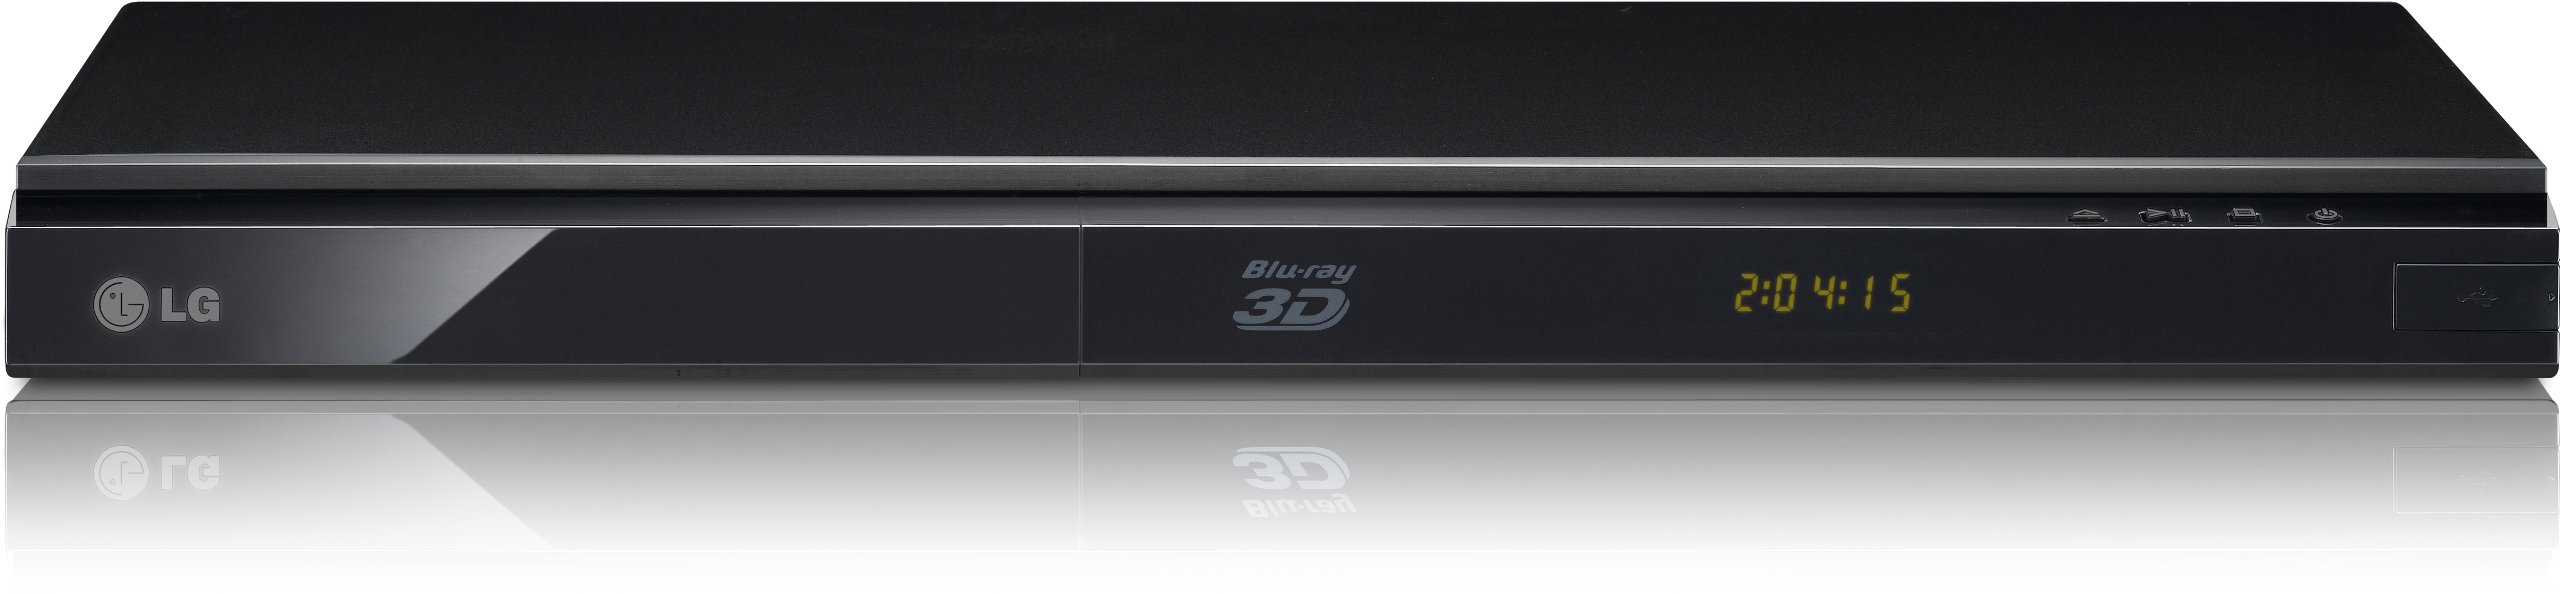 LG BP620 - Reproductor de Blu-ray (Smart Tv, Wifi, USB), color negro: Amazon.es: Electrónica